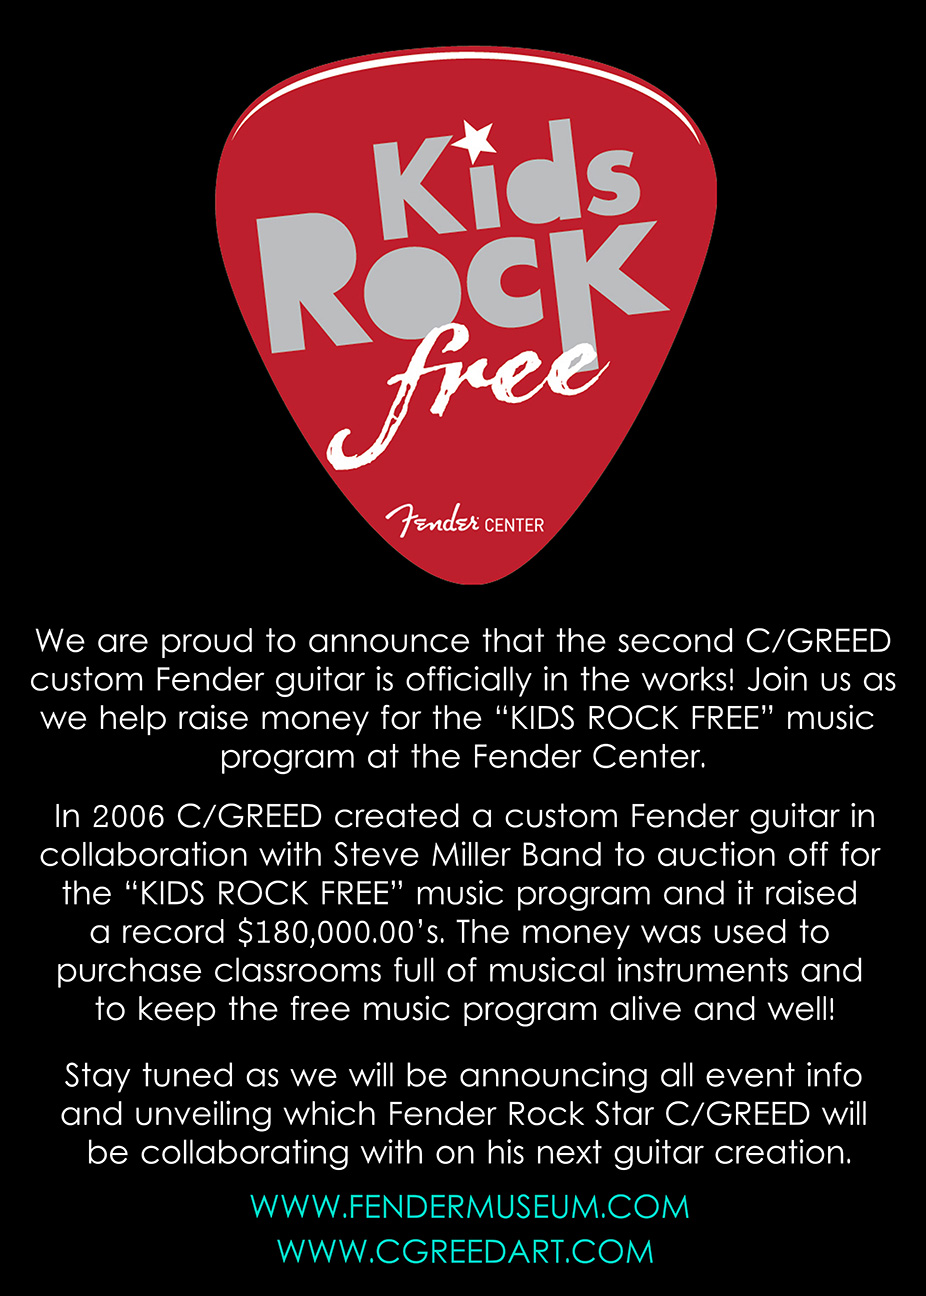 Fender Guitars - X - C/GREED Collaboration #2